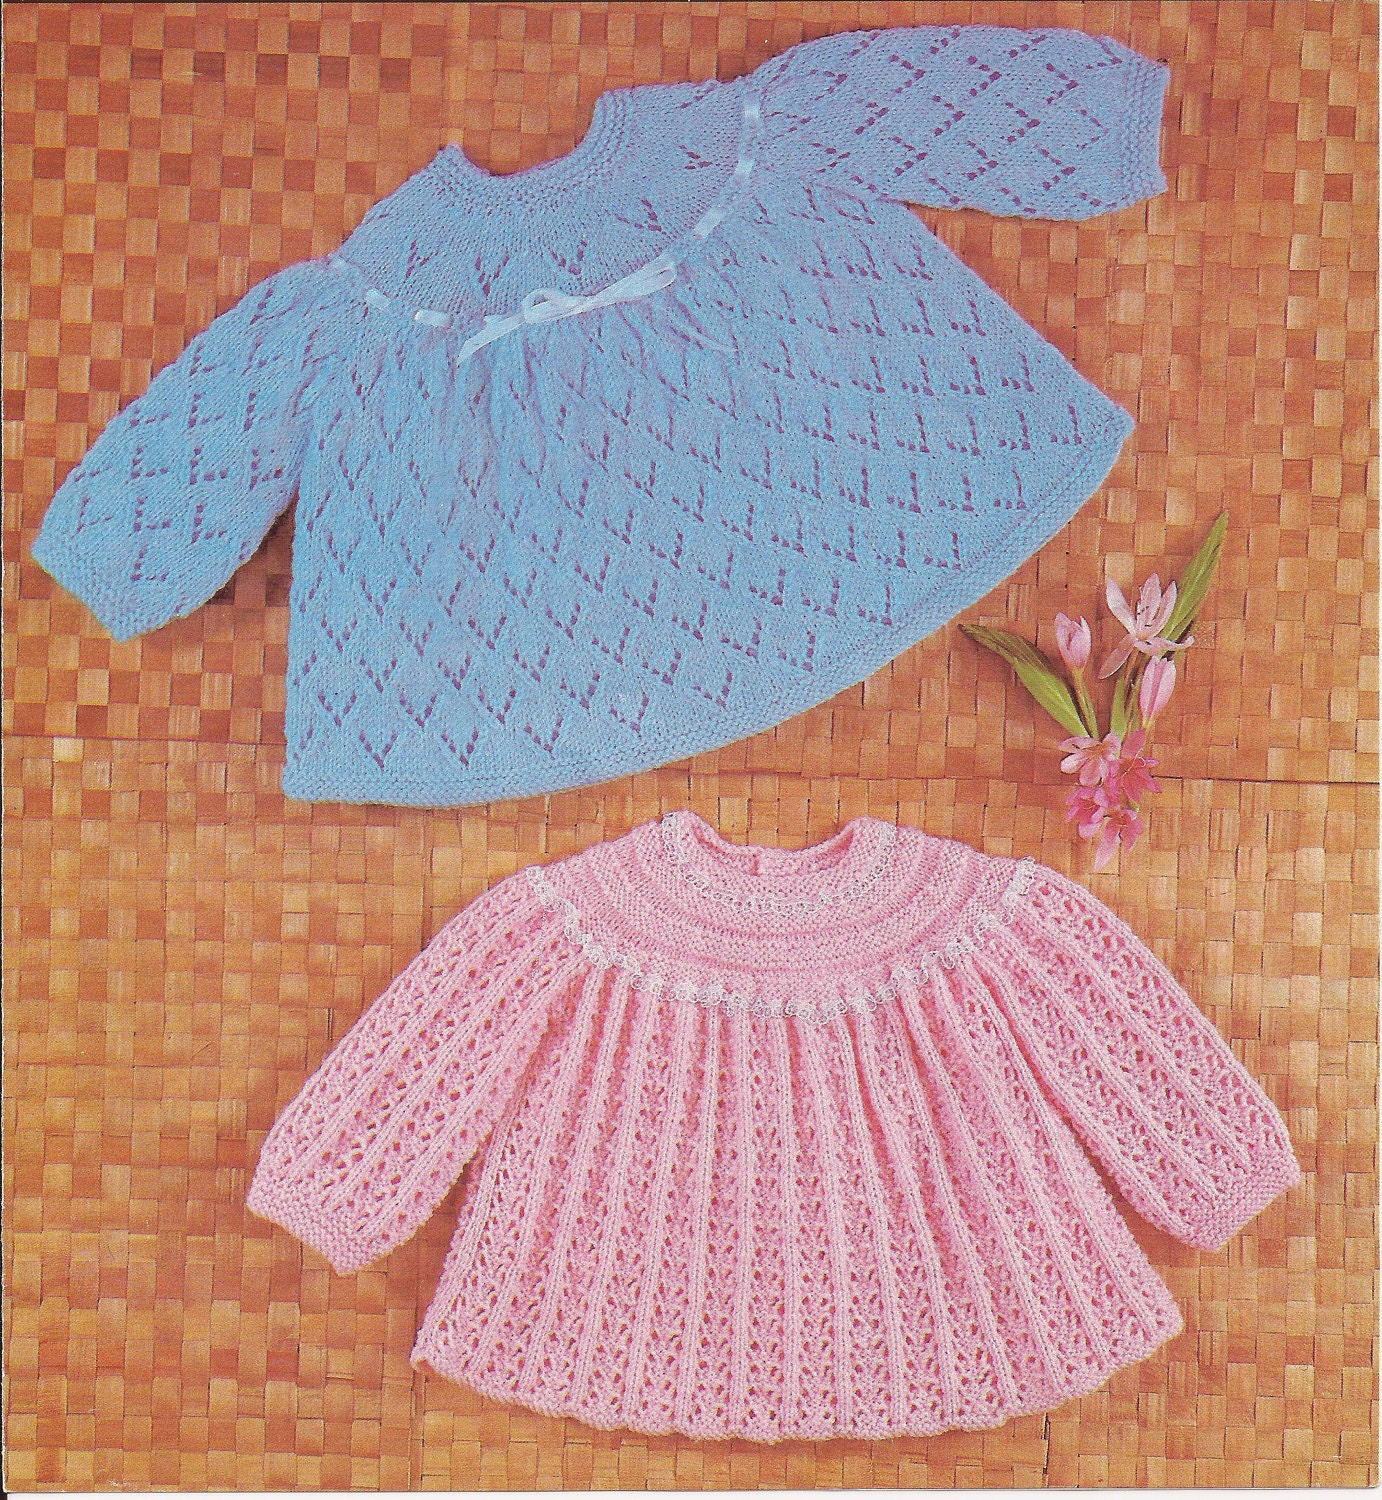 Knitting Pattern Of An Angel : PDF Knitting Pattern Vintage Knitted Baby Angel by georgie8109